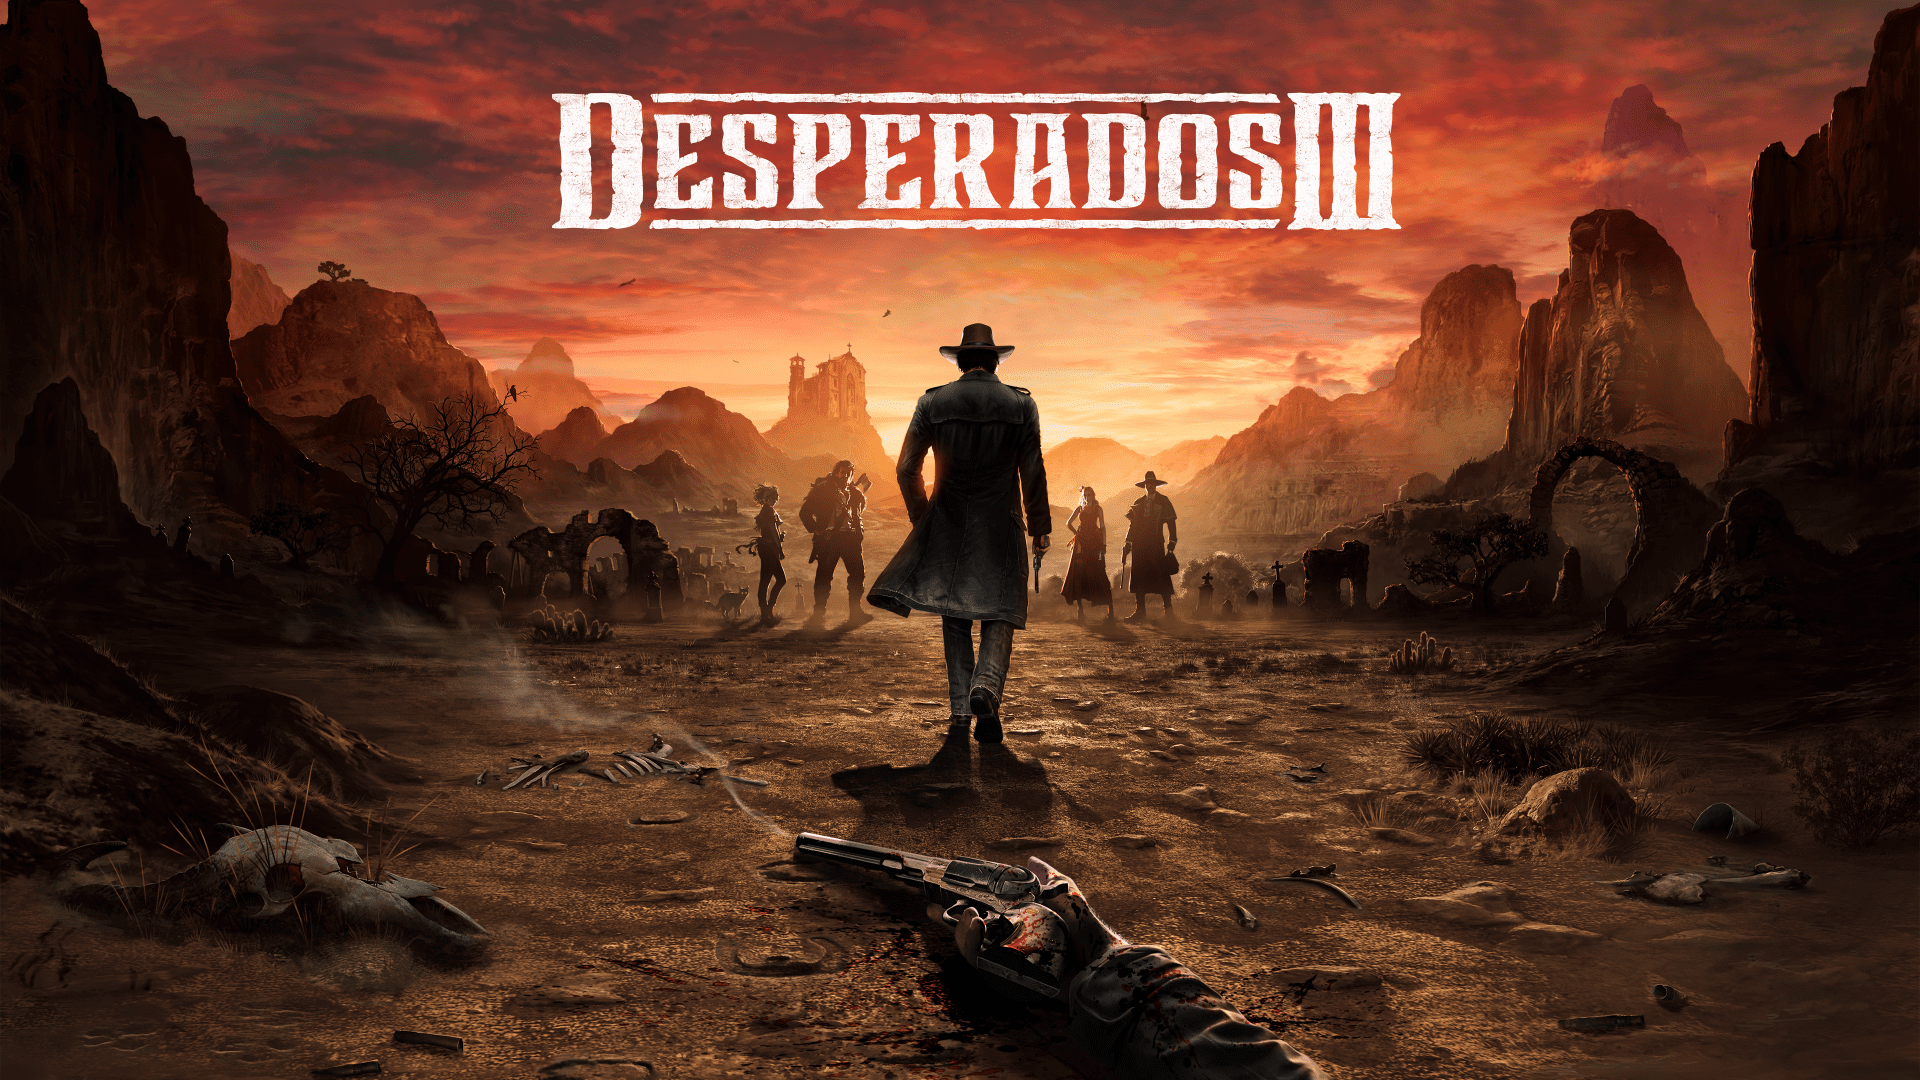 DesperadosIII Wallpaper 4K